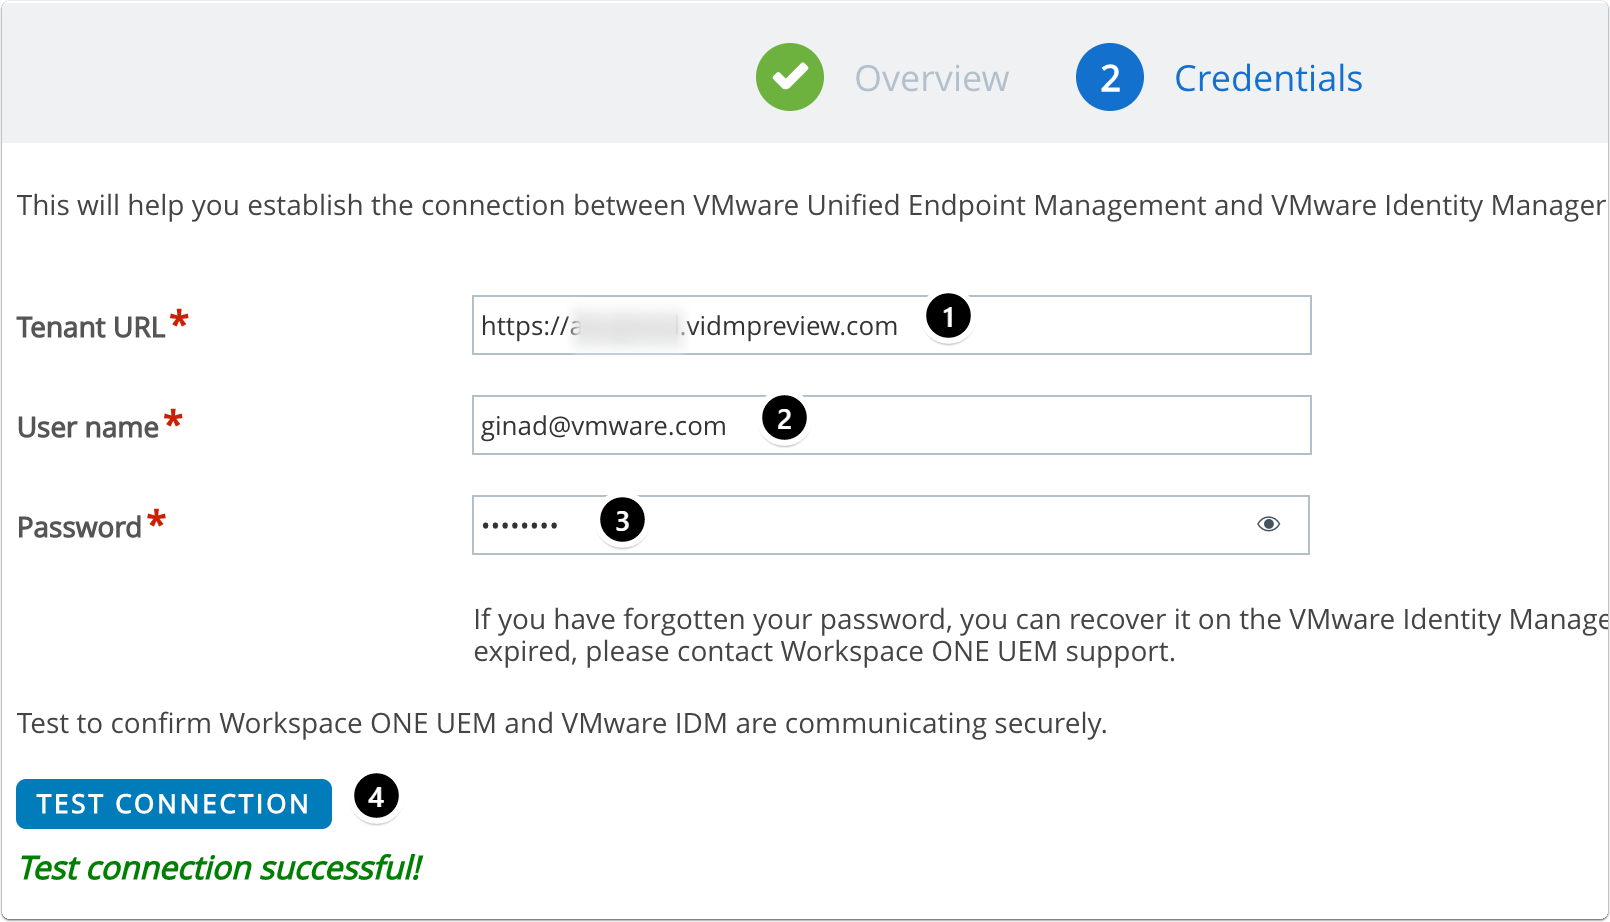 Configure details for Workspace ONE Access (VMware Identity Manager)